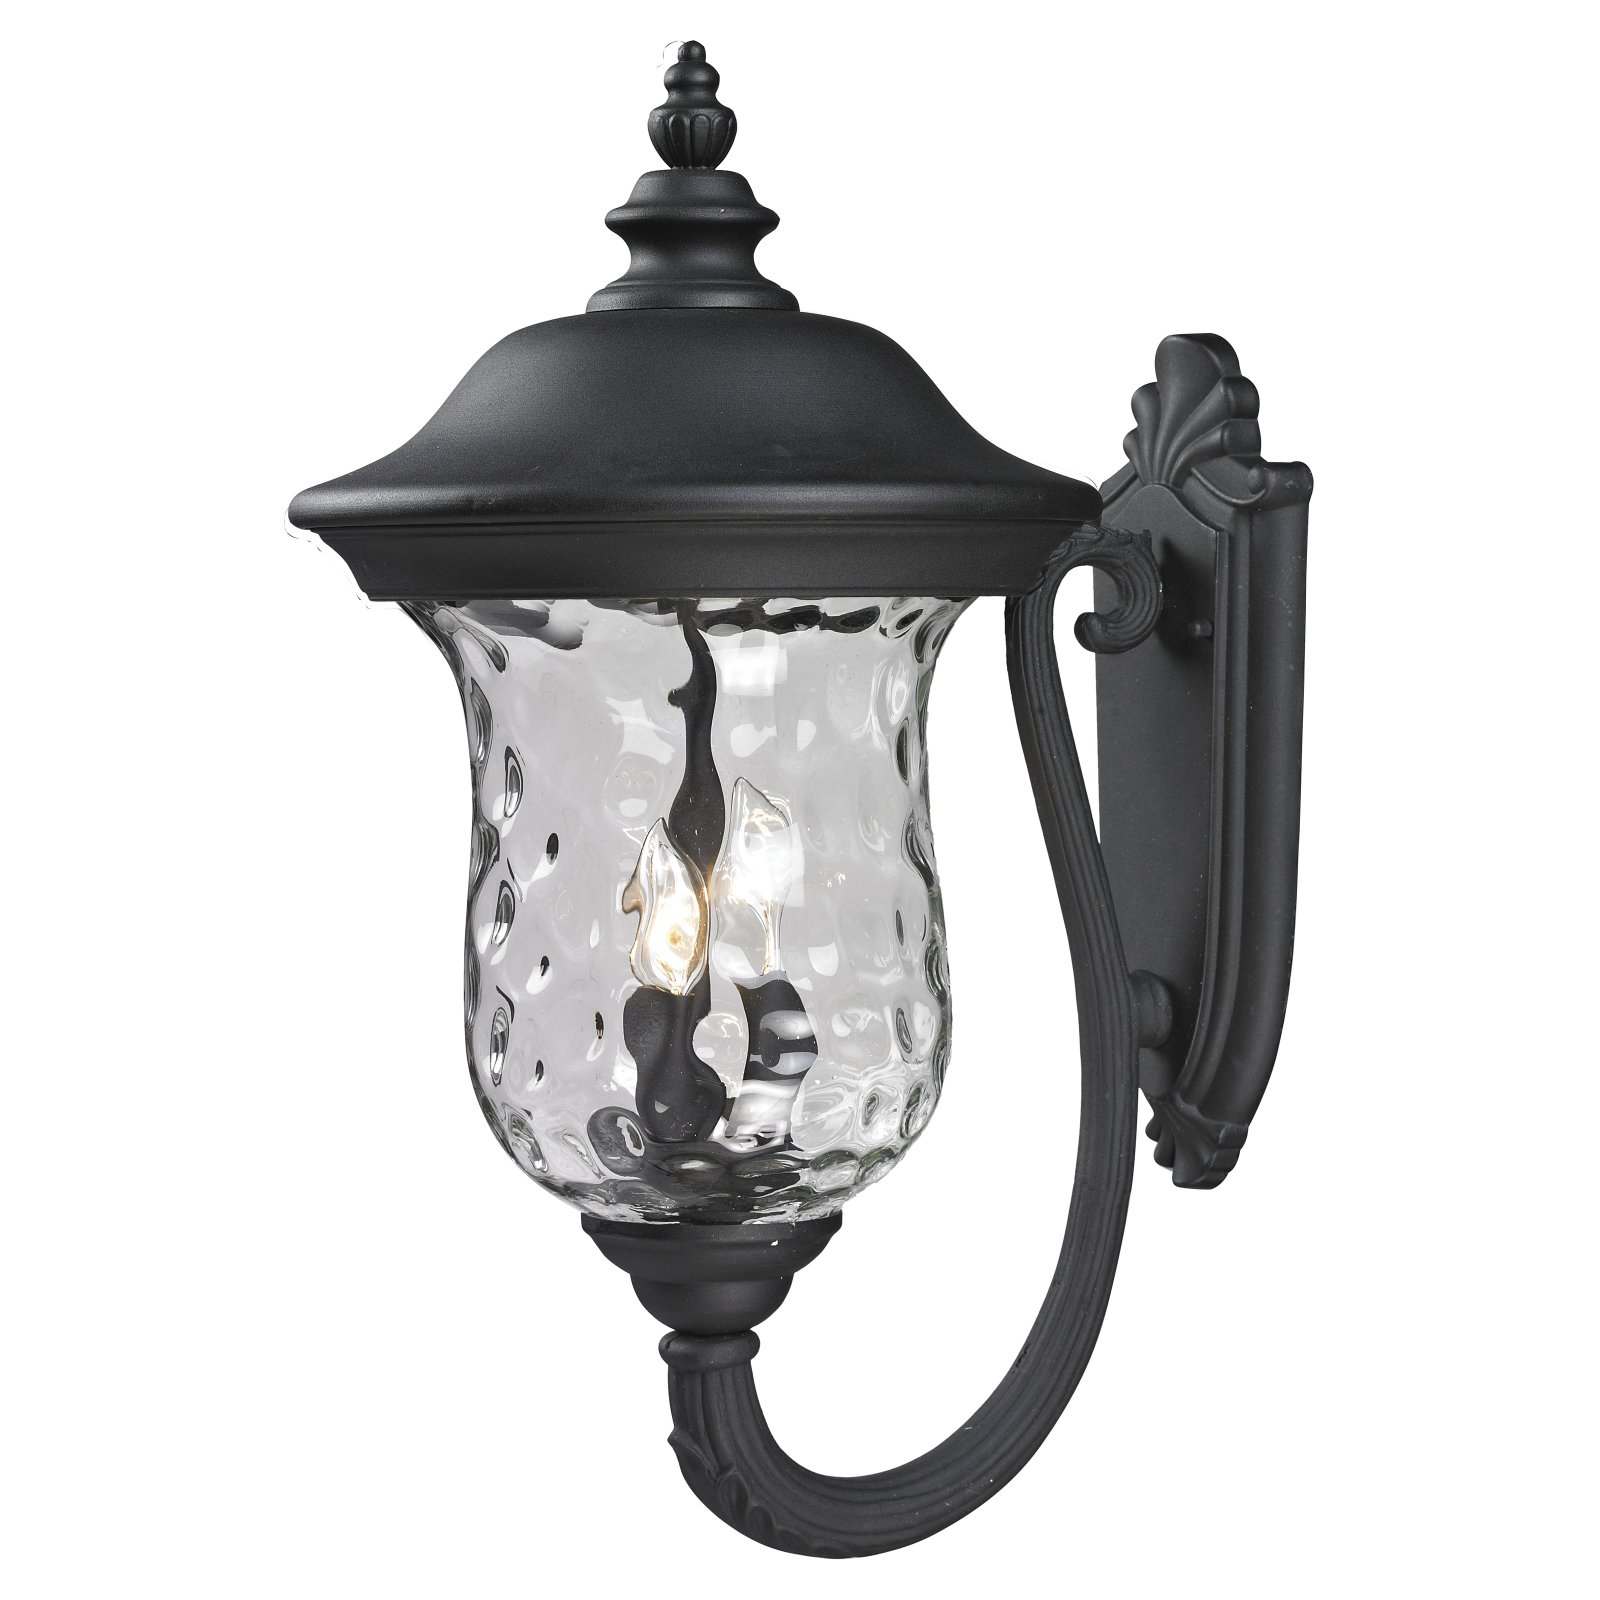 Z-Lite Armstrong Outdoor 3-Light Wall Sconce, Black